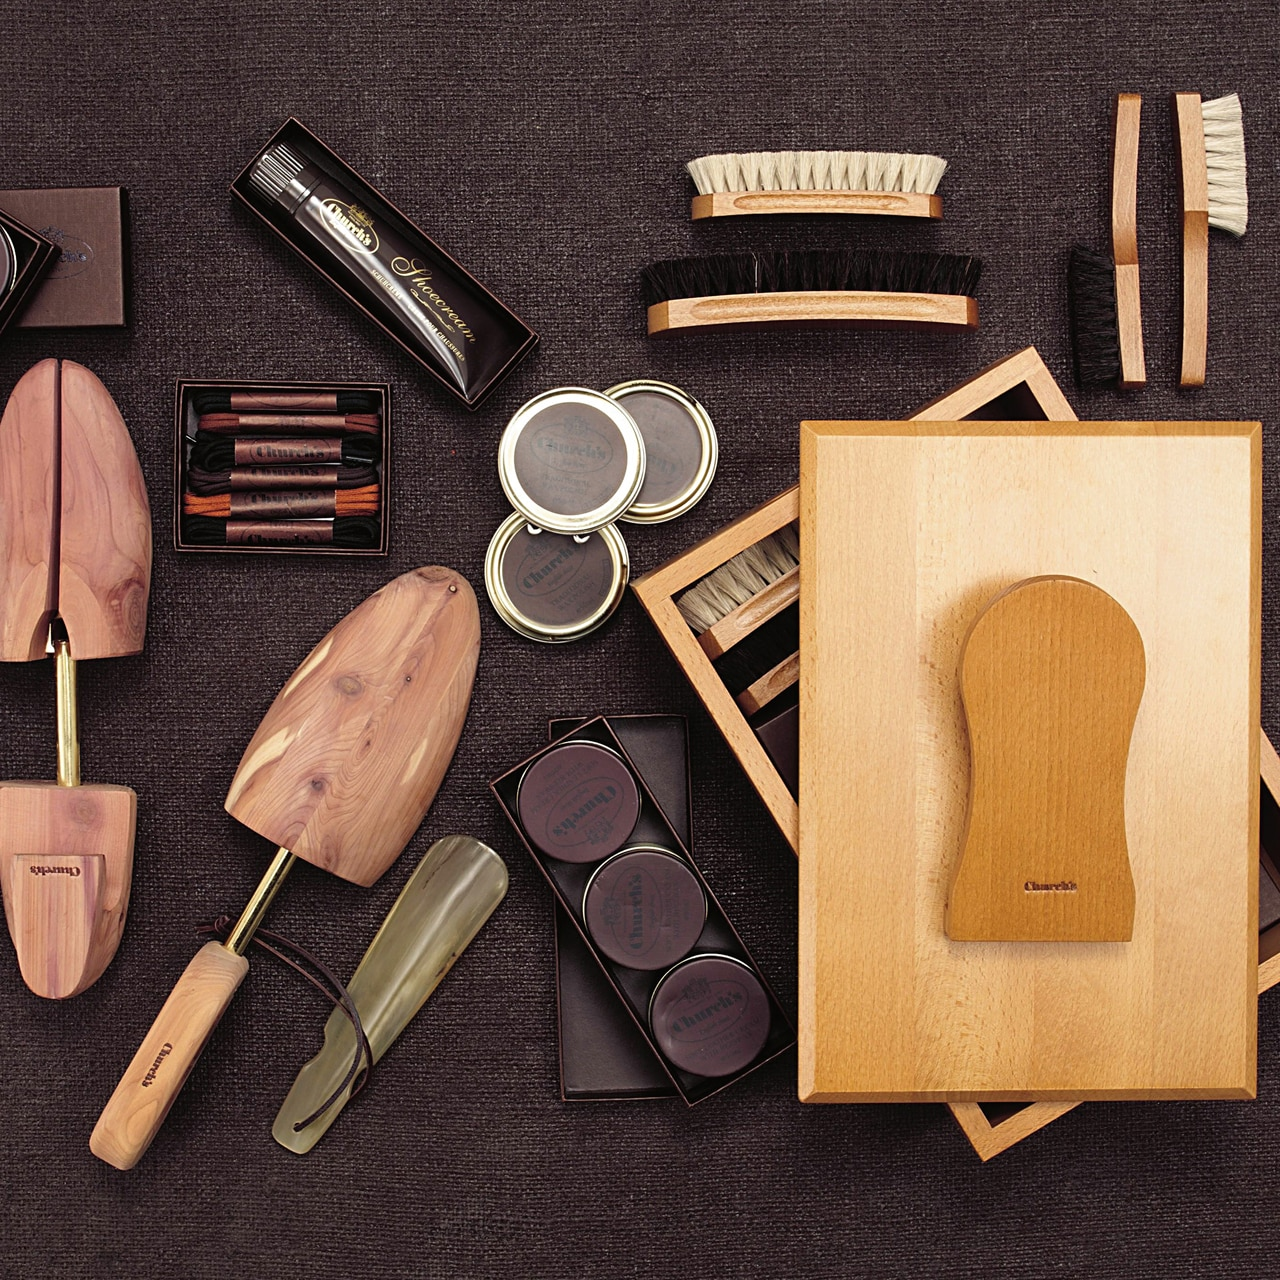 Shoe trees and polishes and brushes